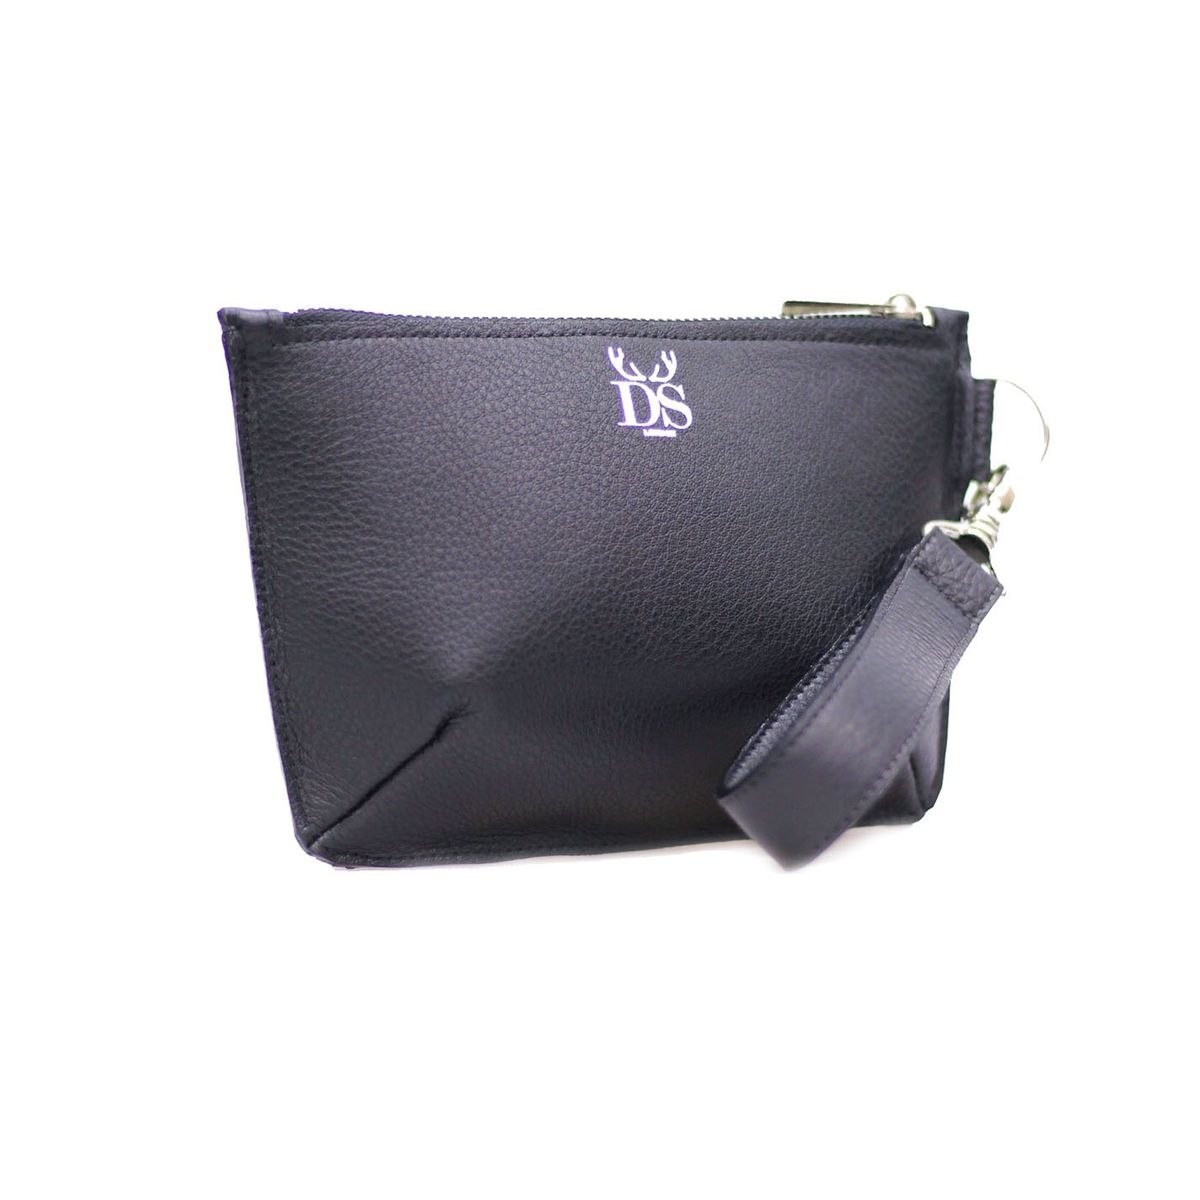 Black Mini Sienna Clutch bag - product images  of